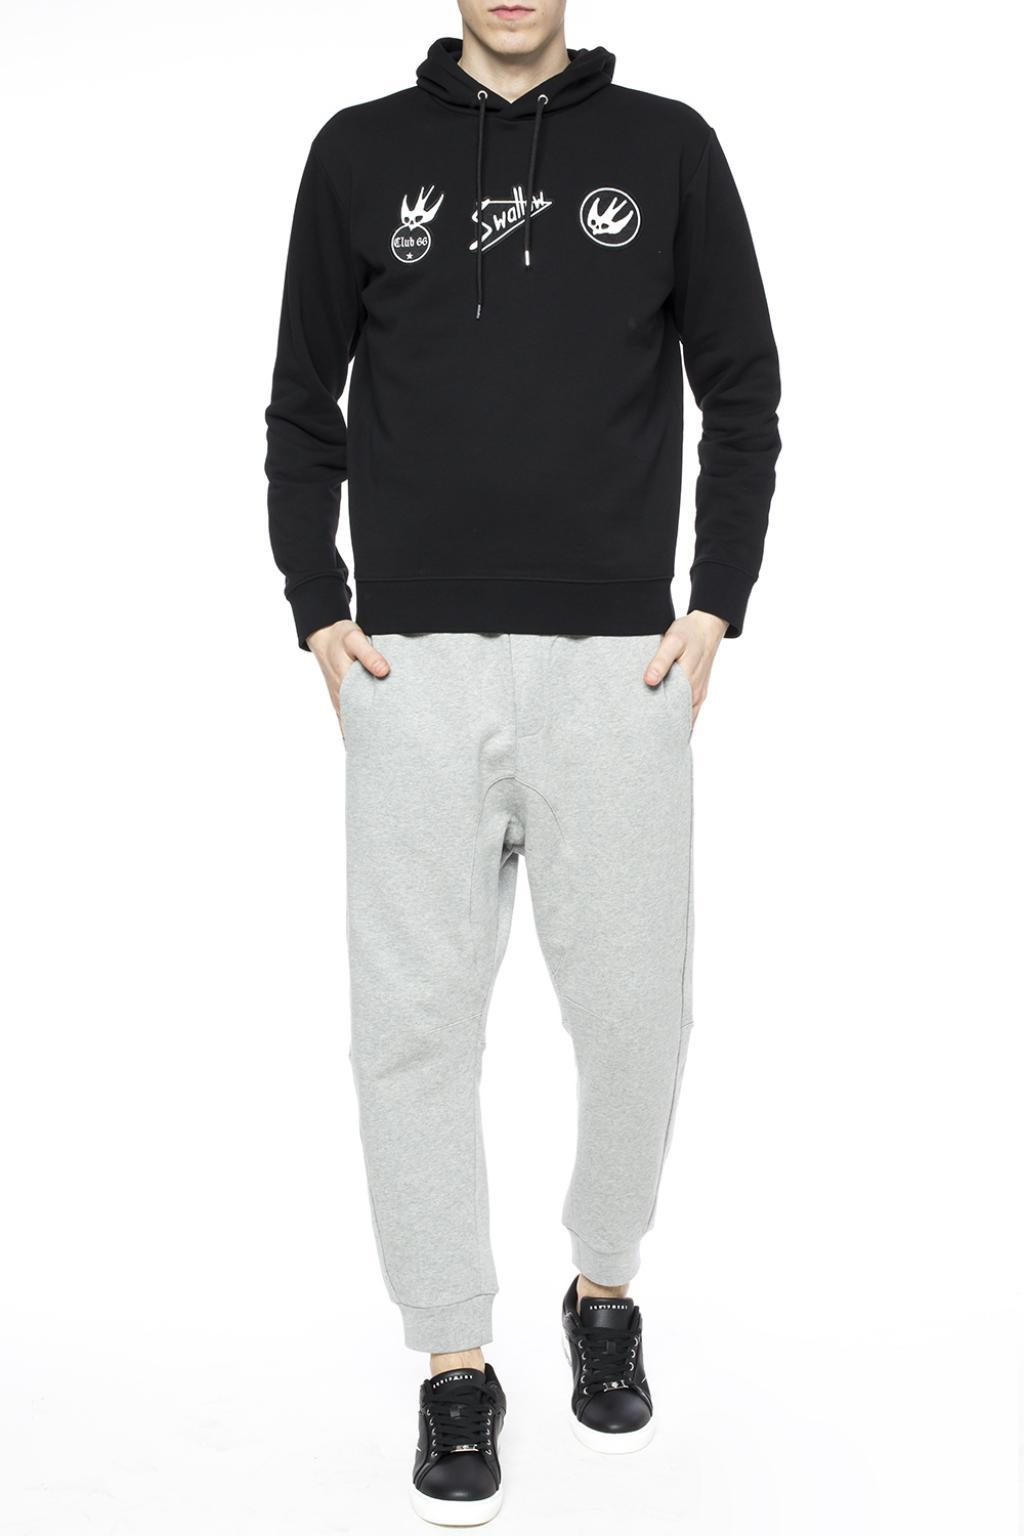 McQ Cotton Patched Sweatshirt in Black for Men